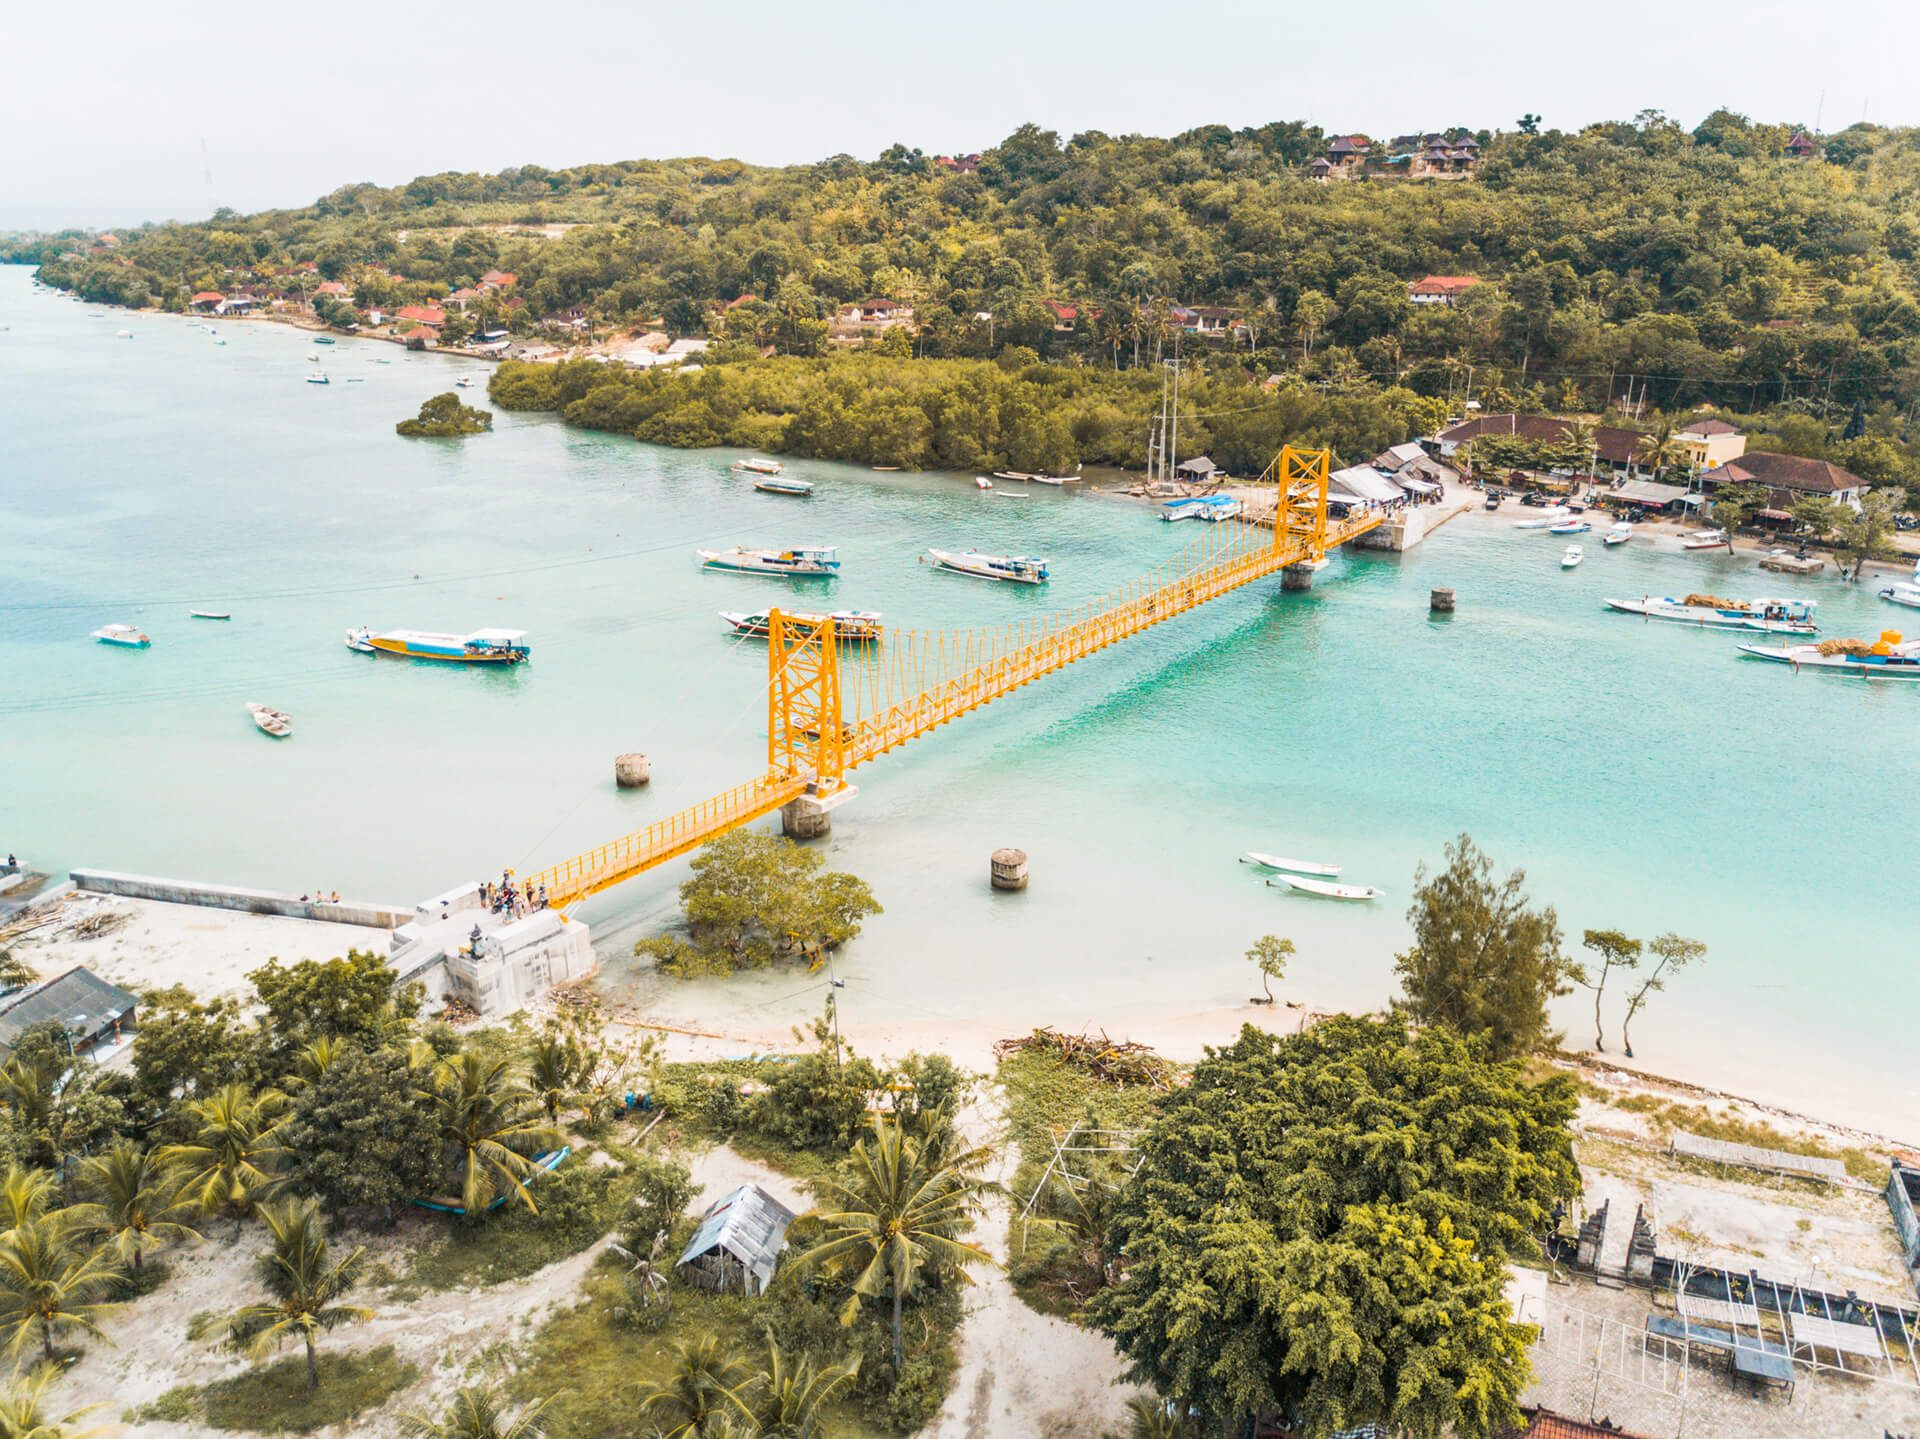 Nusa Lembongan should be one one of your highlights when visiting Bali. Our complete Nusa Lembongan guide, including to do's and recommendations.